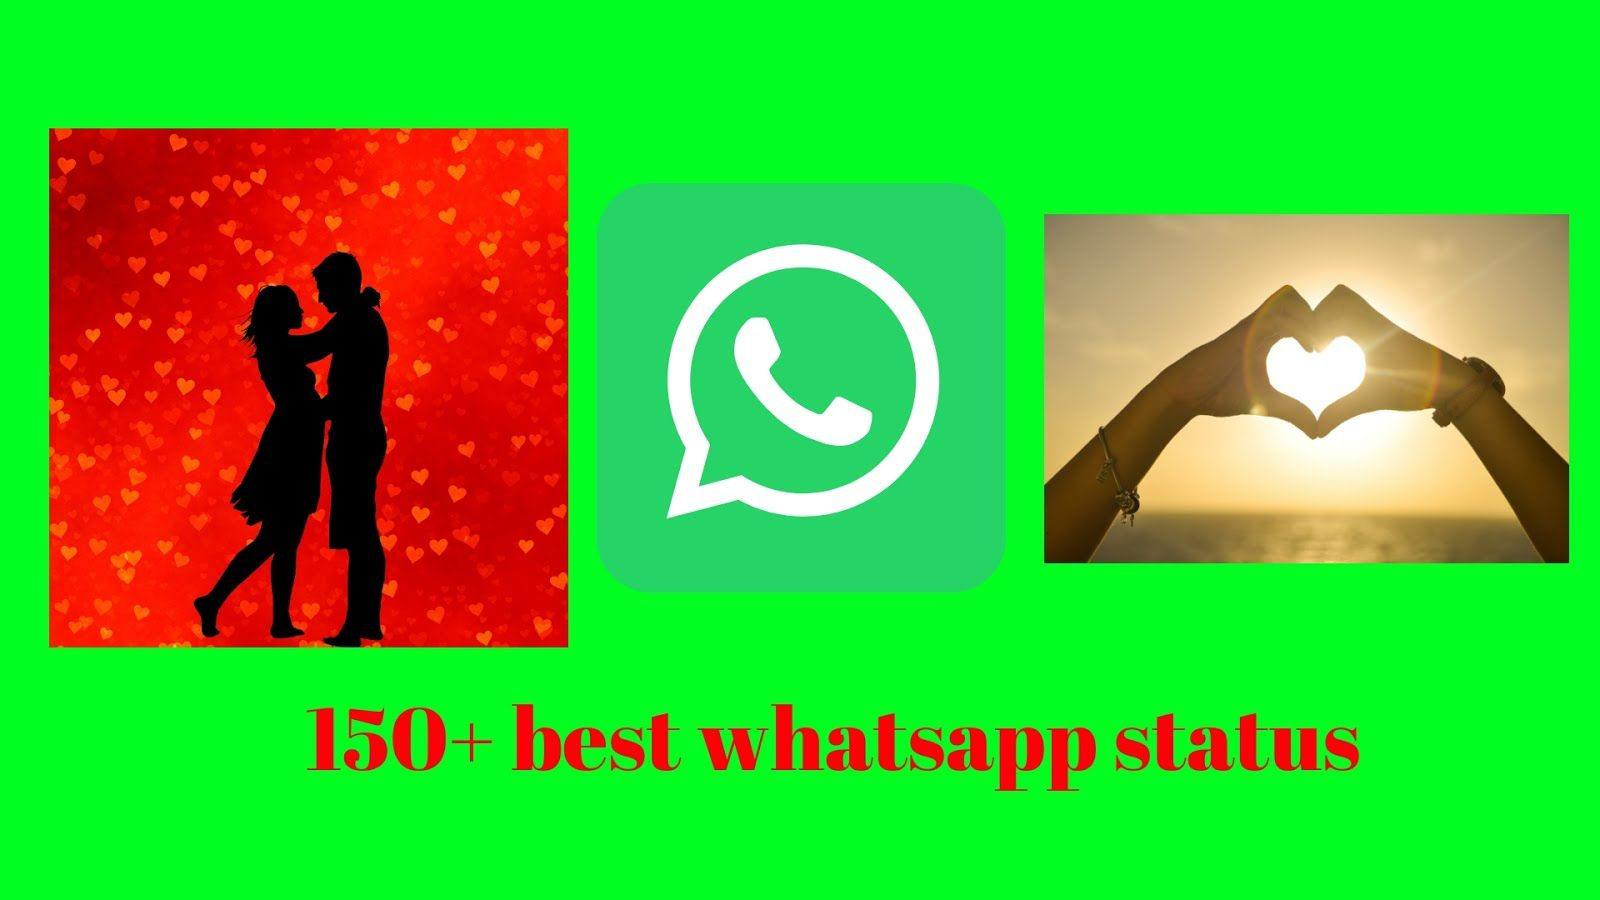 Best Whatsapp Status Best Whatsapp Status Movie Posters